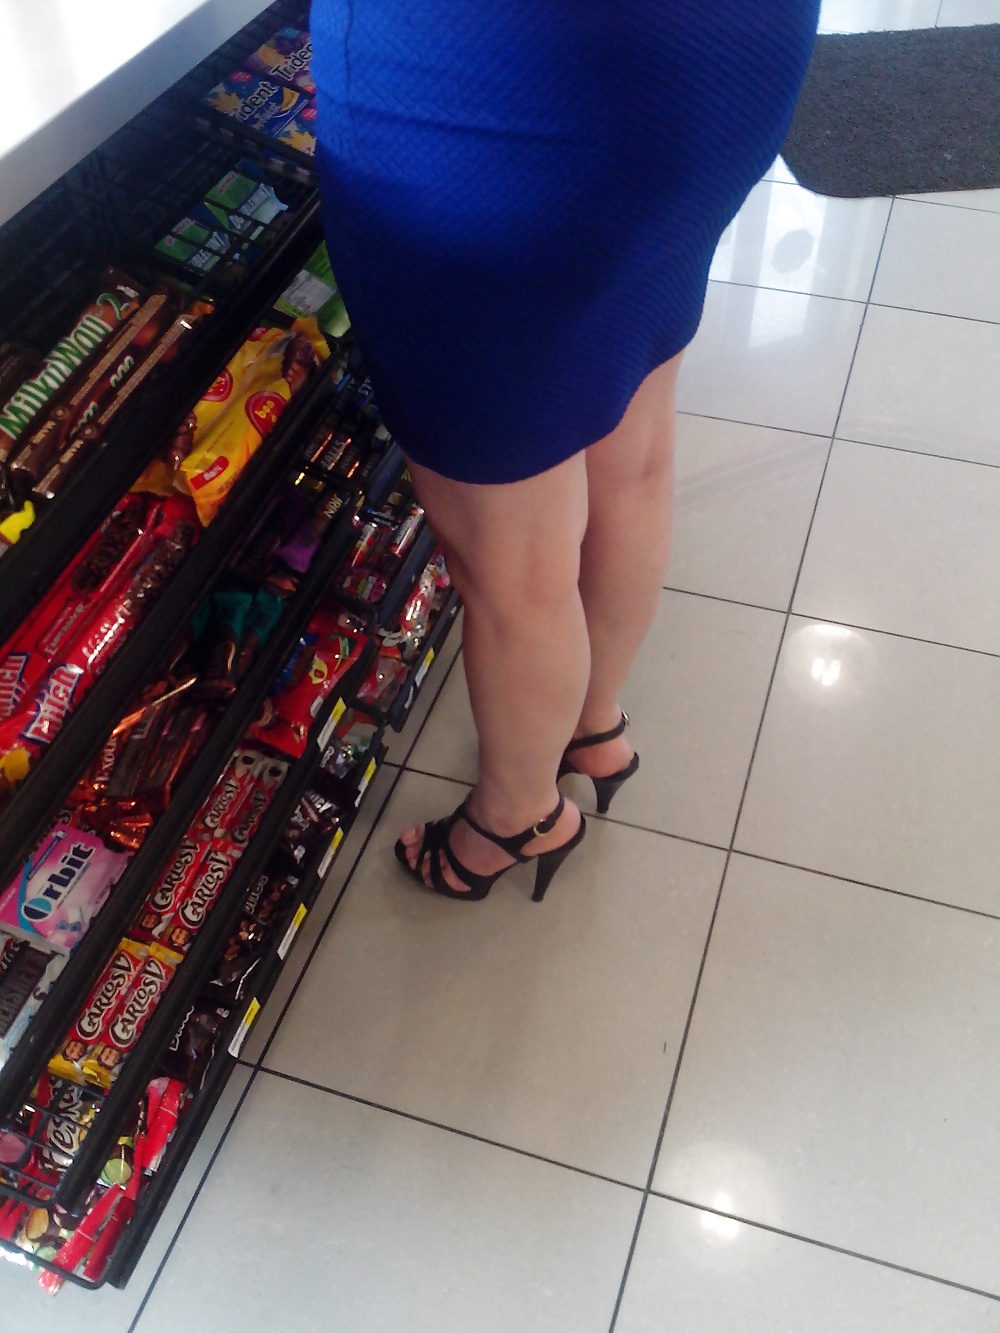 Turkish milf nice leg